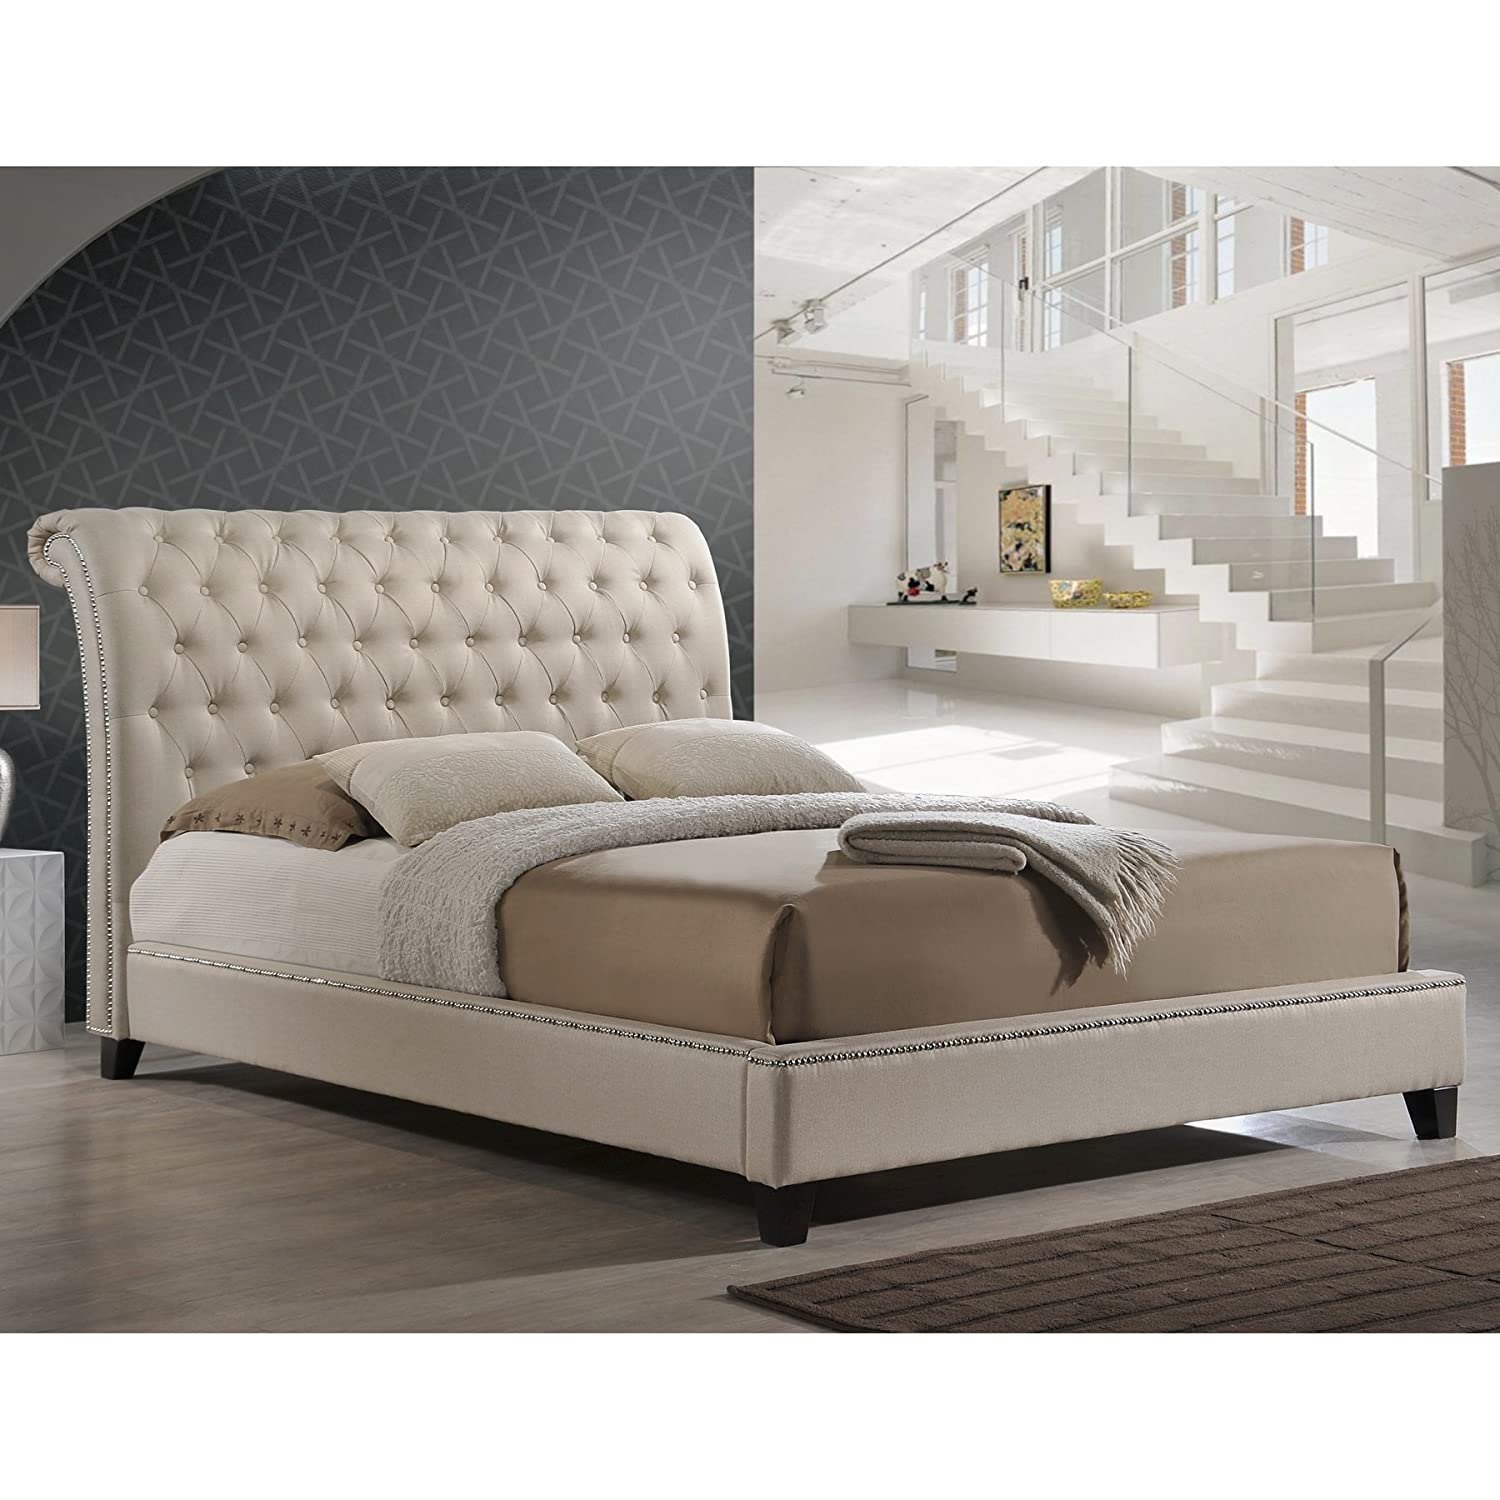 great upholstered for comforter tufted galleries headboard and size king sets headboards bed ideas bedroom